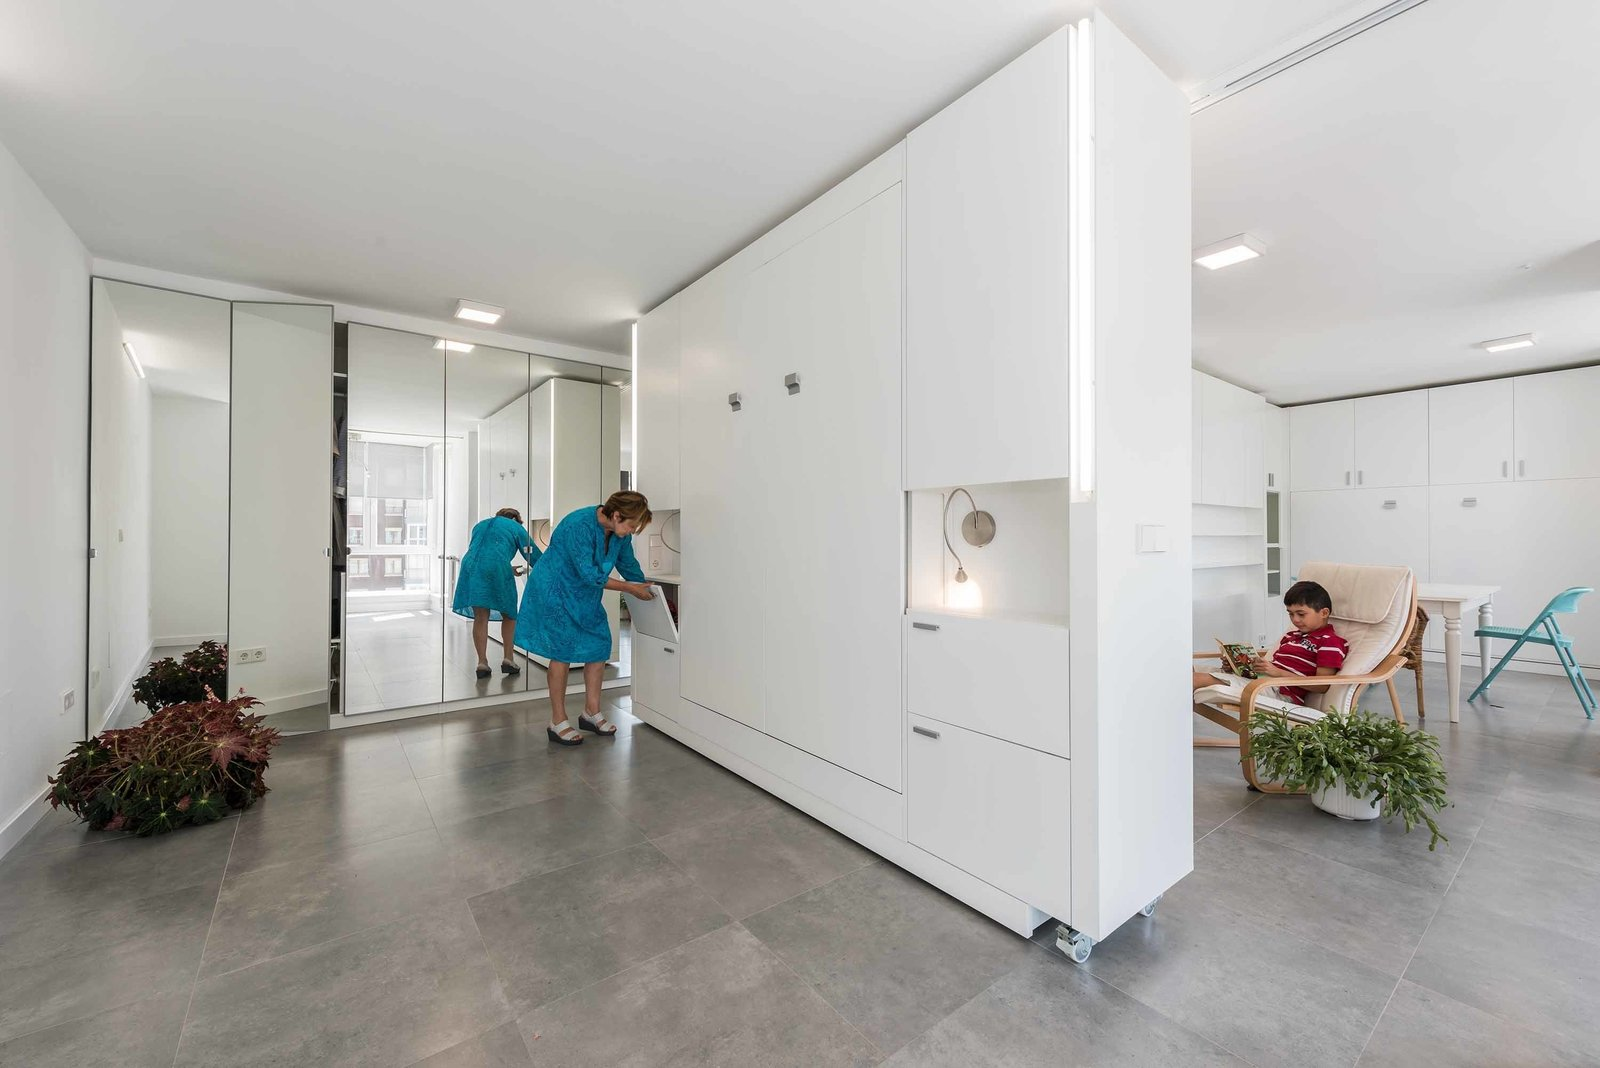 Photo 2 Of 7 In Movable Walls Instantly Transform A Small Vacation Home From A Two Bedroom To A Studio By Sarah Akkoush Dwell